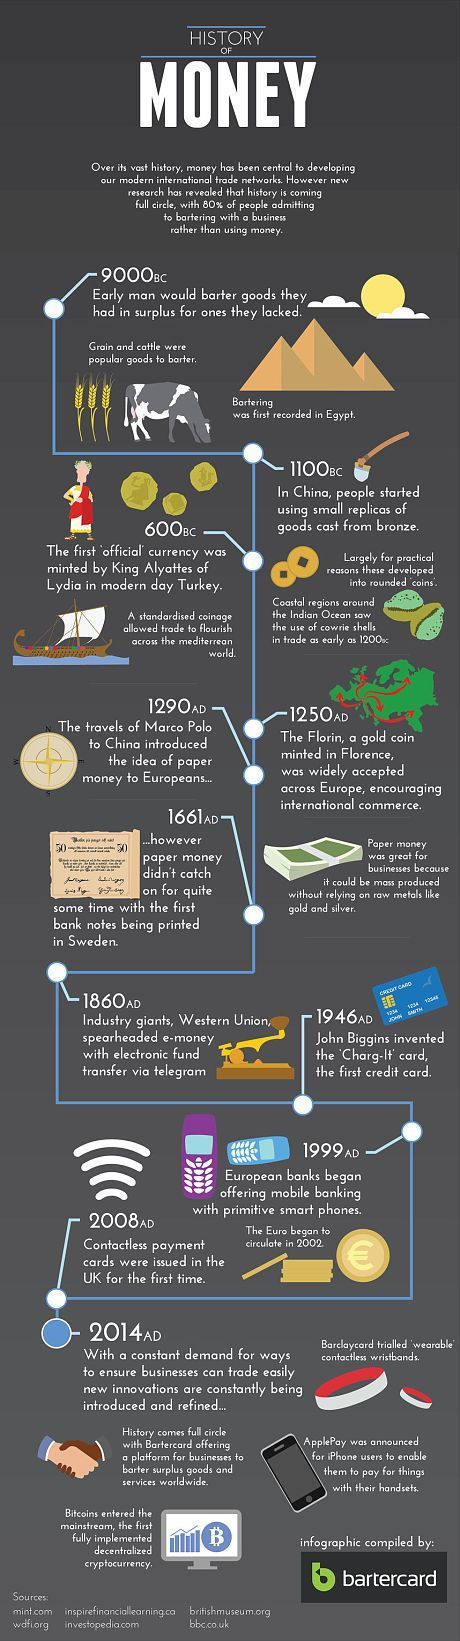 The history of money from barter to bitcoin cryptocurrency the history of money from barter to bitcoin telegraph ccuart Image collections